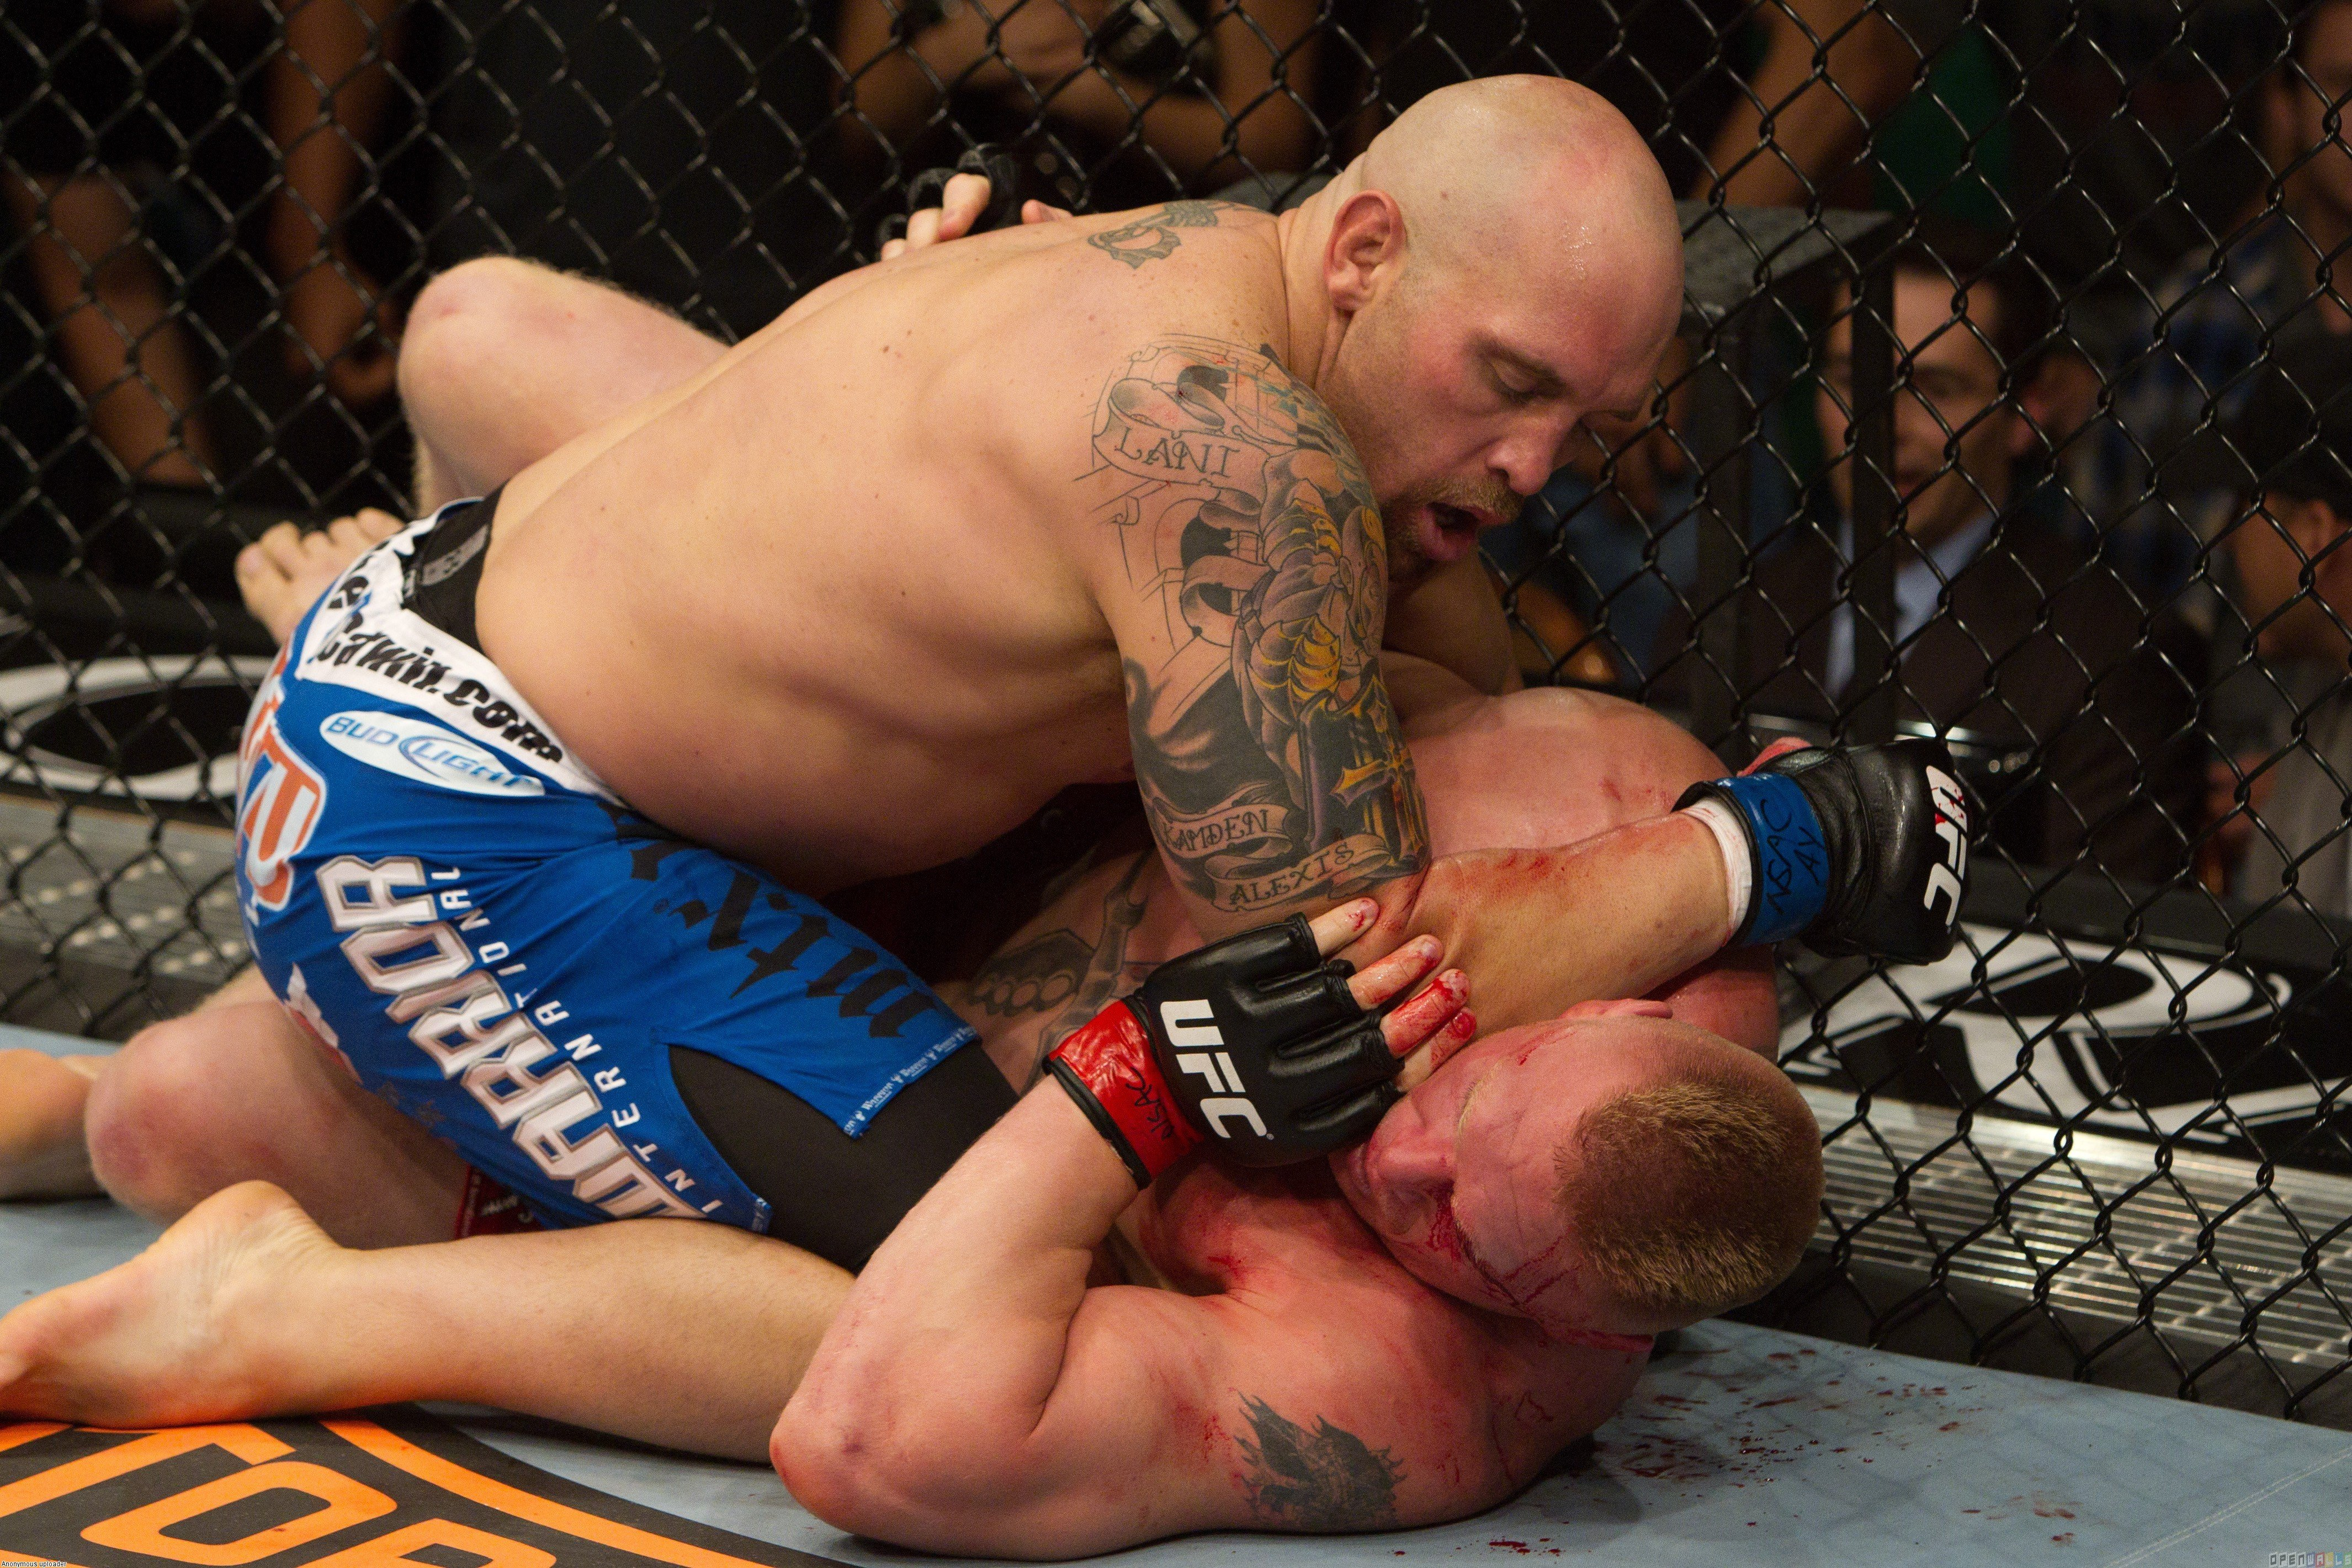 Ufc 116   brock lesnar vs shane carwin wallpaper 14814   Open Walls 4261x2841